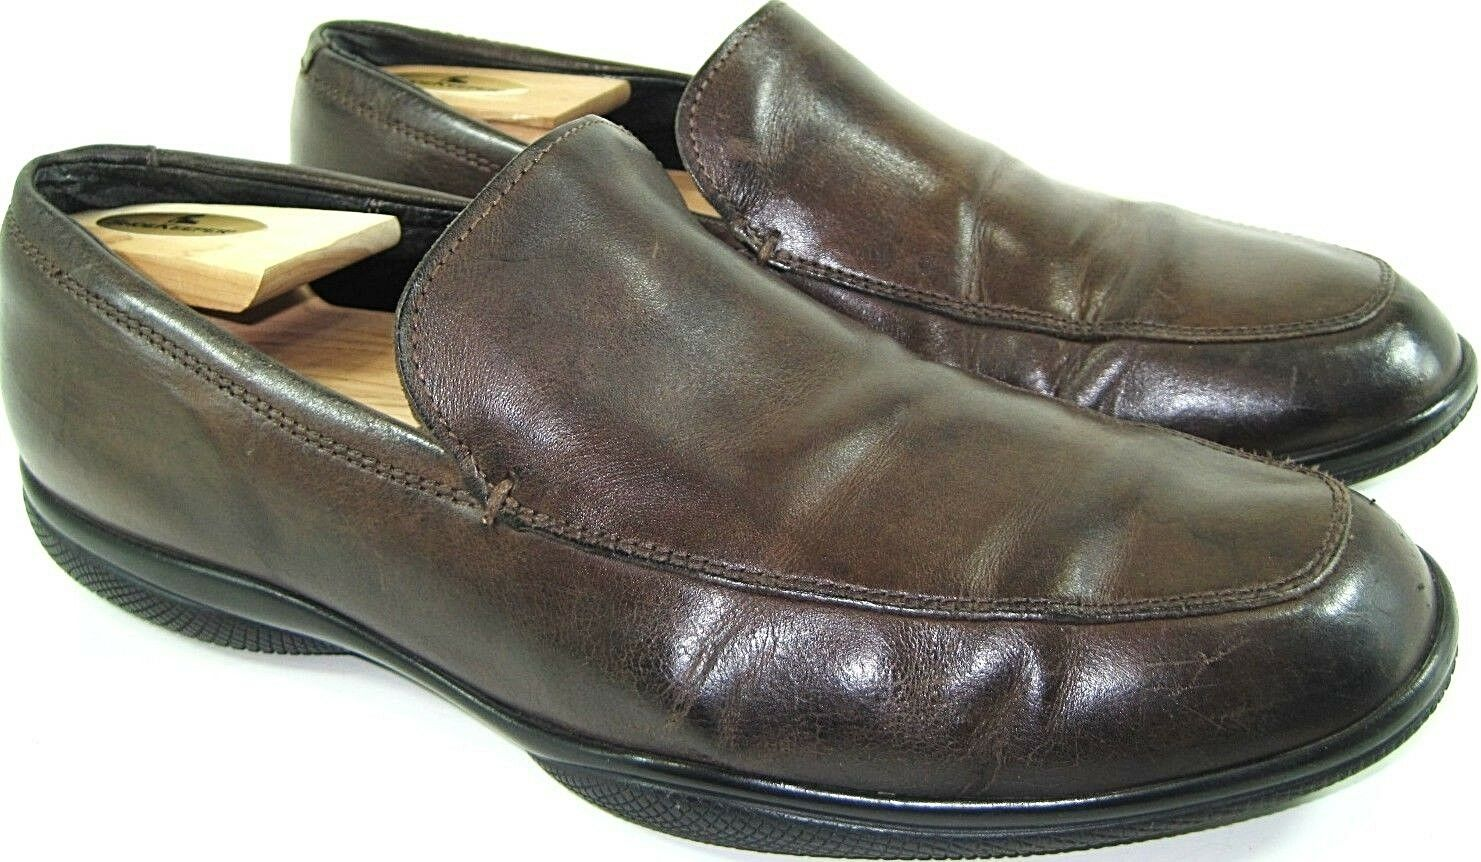 Banana Republic Men Leather Loafer Shoes Size 9.5 D Brown Leather Lined Non-Slip